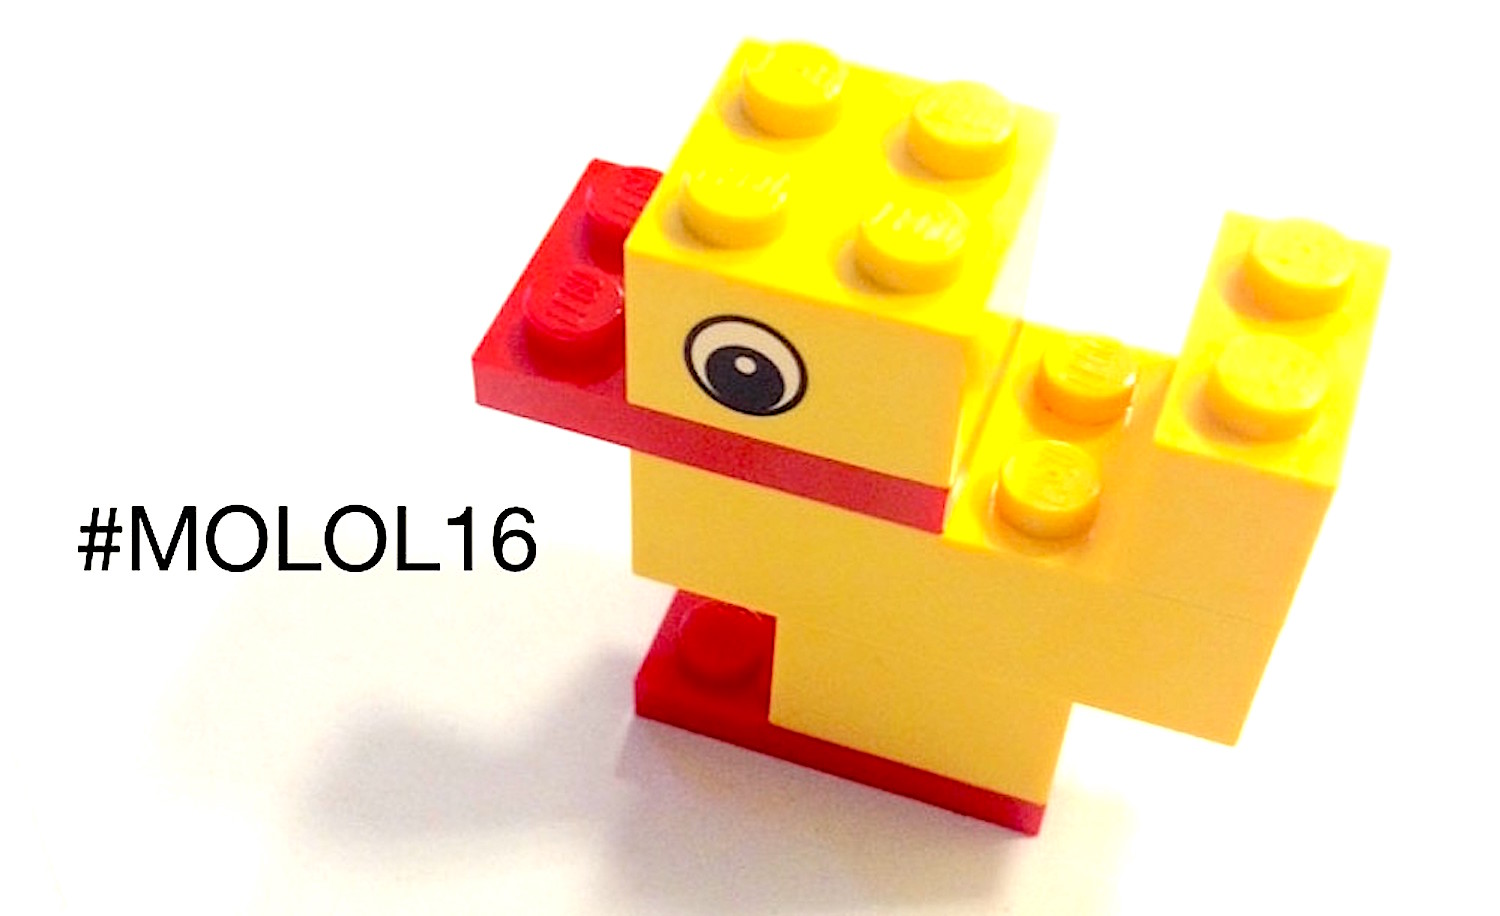 lego-ente-edkimo-workshop-MOLOL16-Oldenburg-Education-Schule-Bildung-1500px